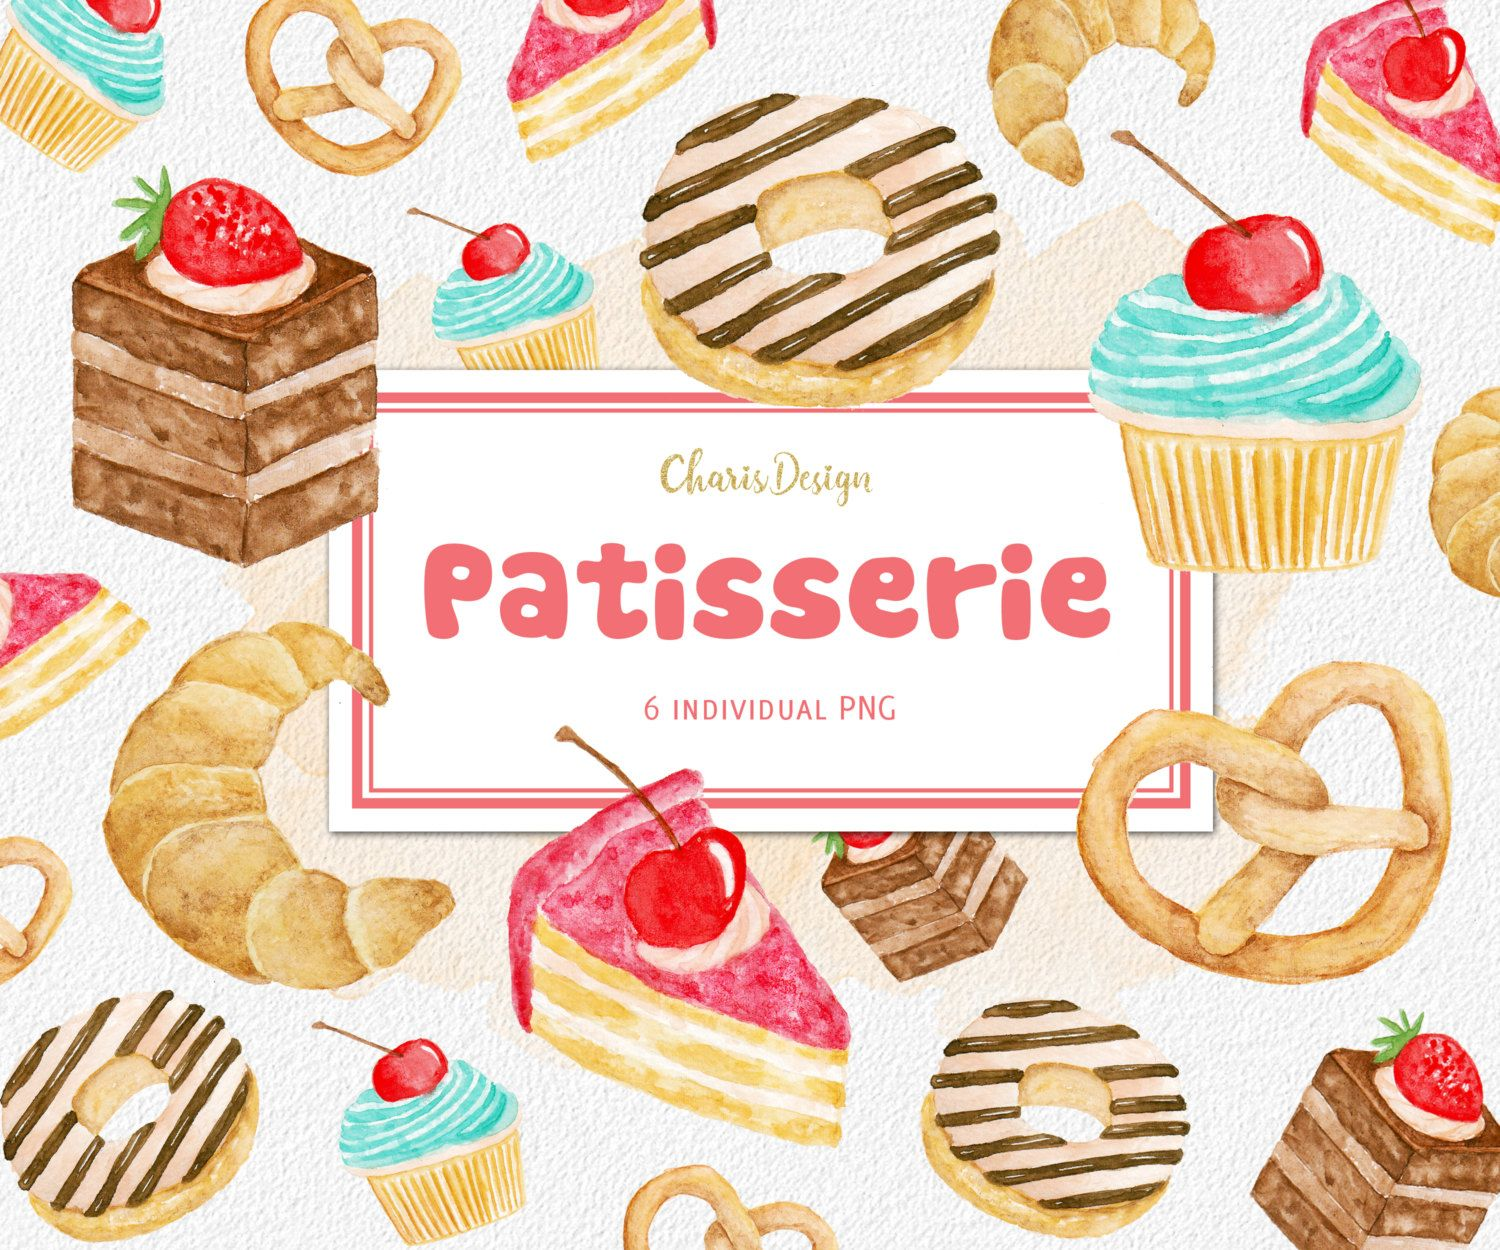 Patisserie pastry watercolor clipart illustration cake